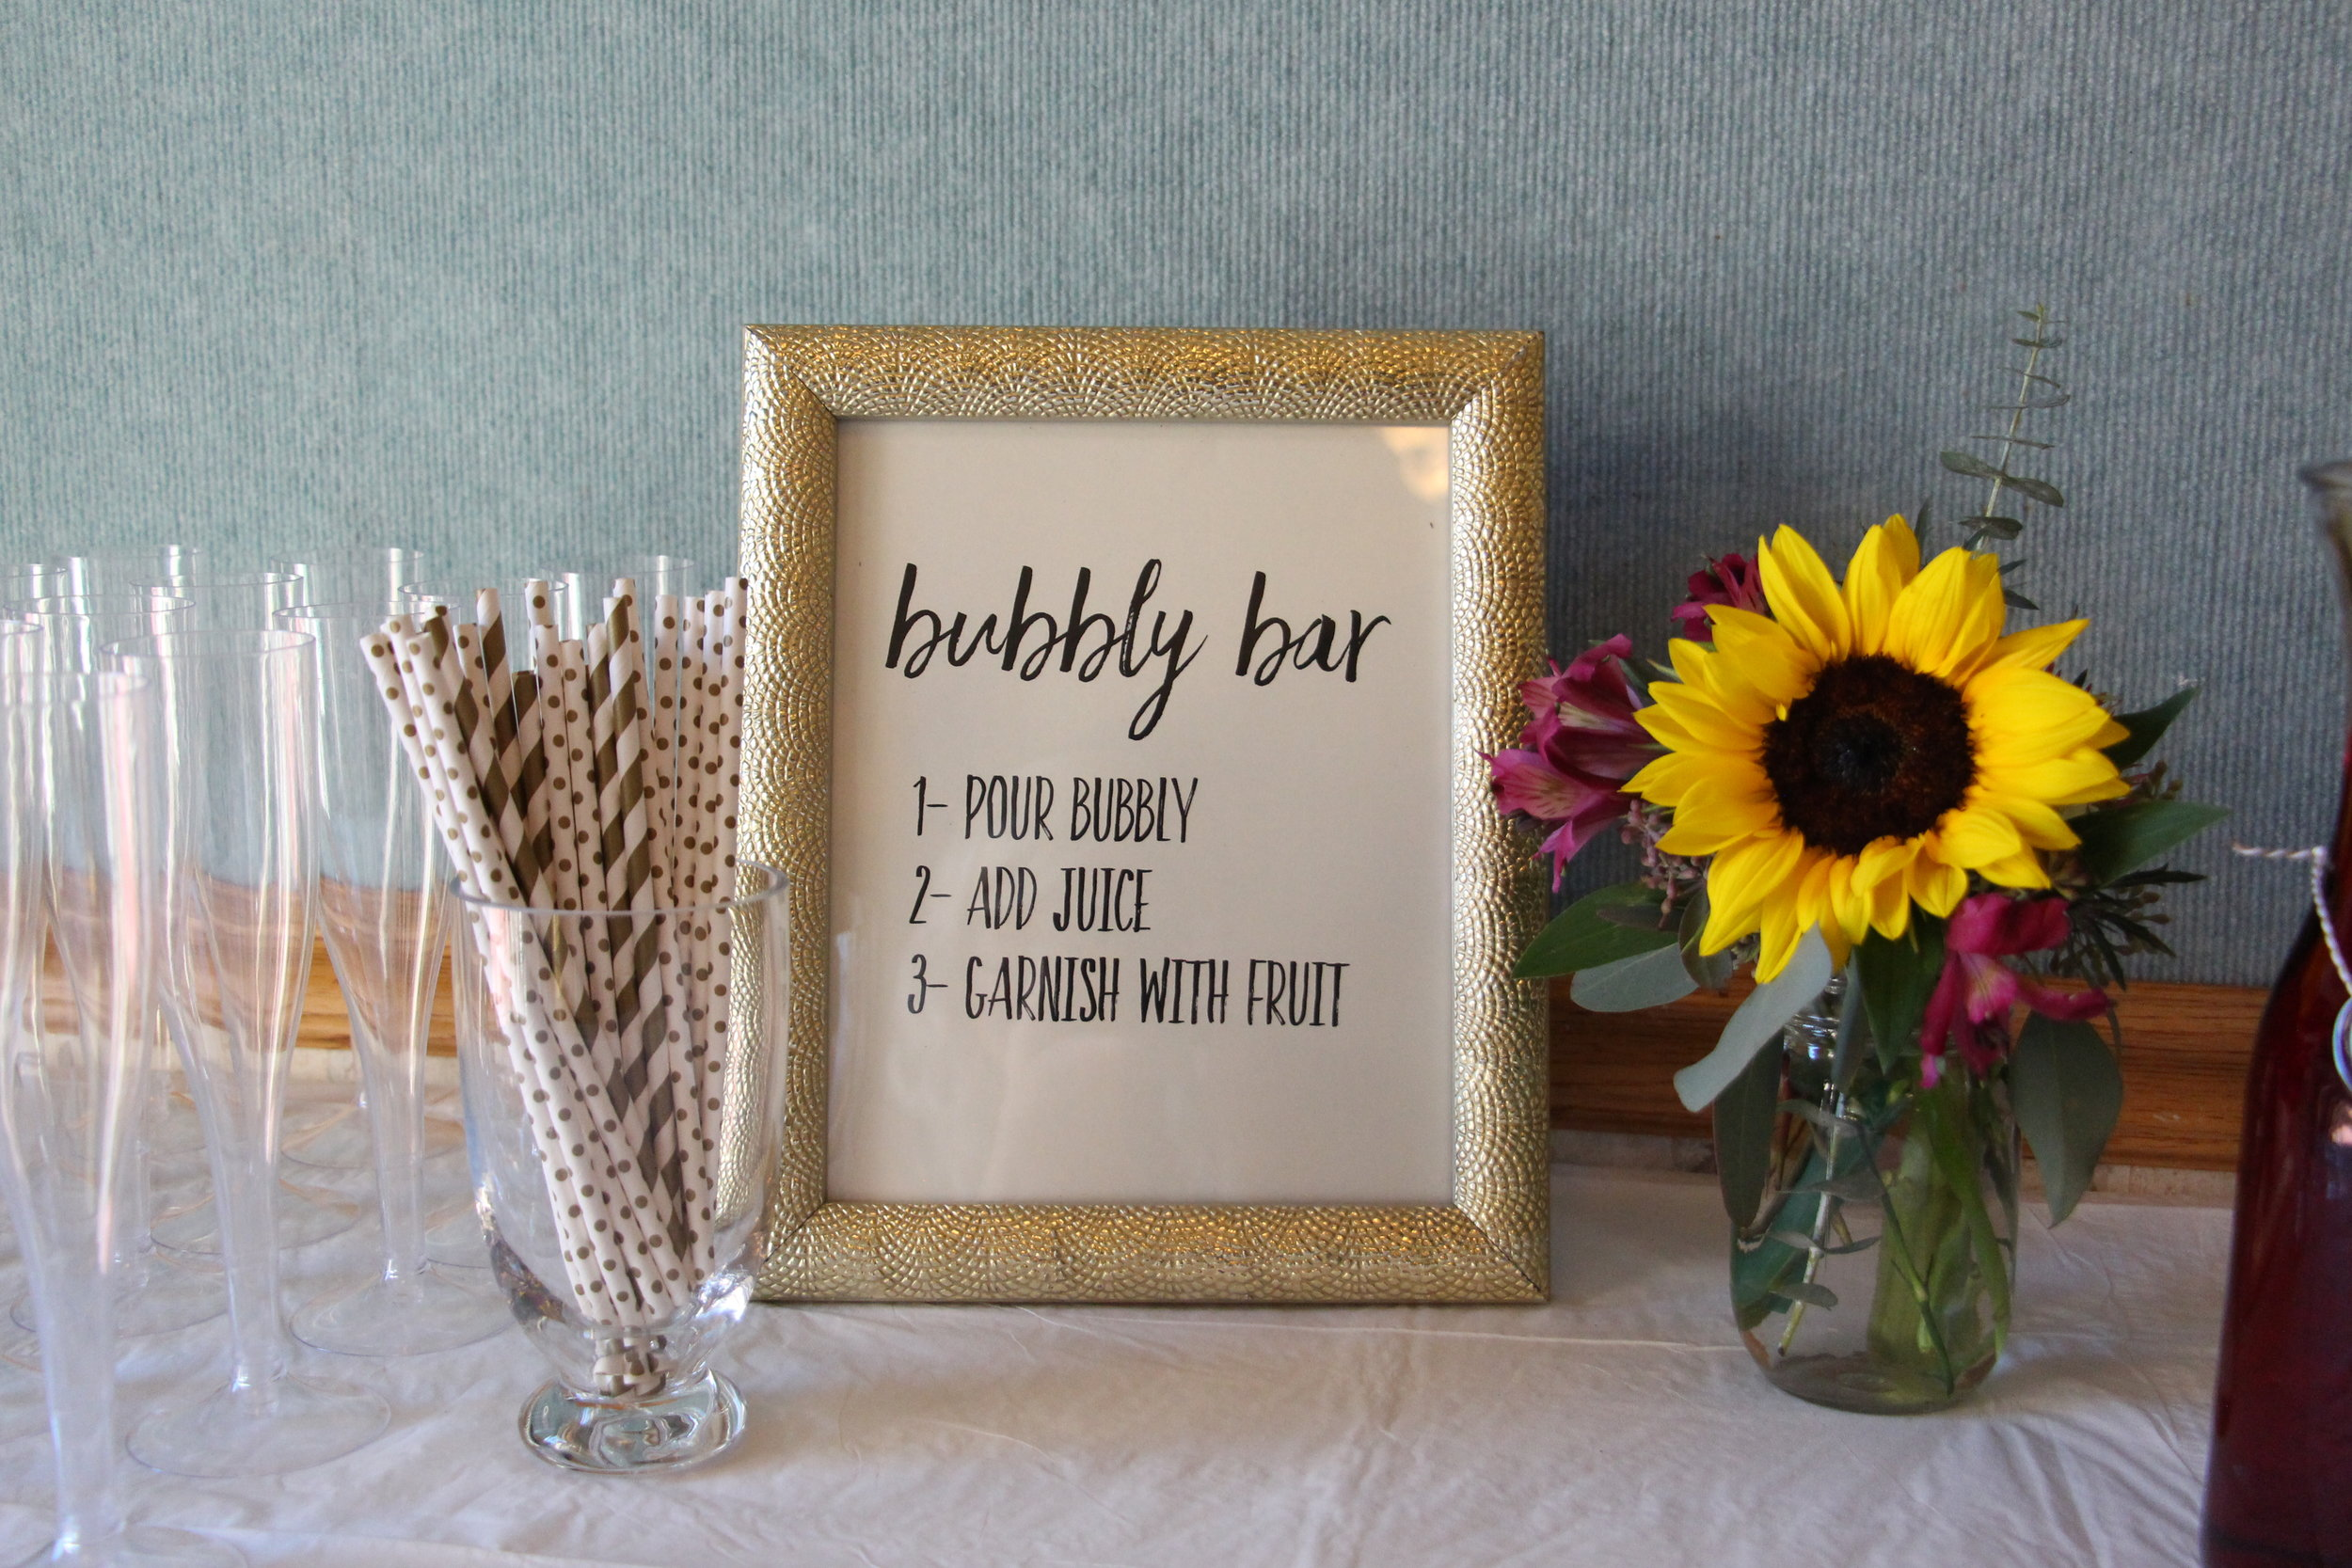 brunch and bubbly bridal shower bubbly bar sign by Mindy Larsen